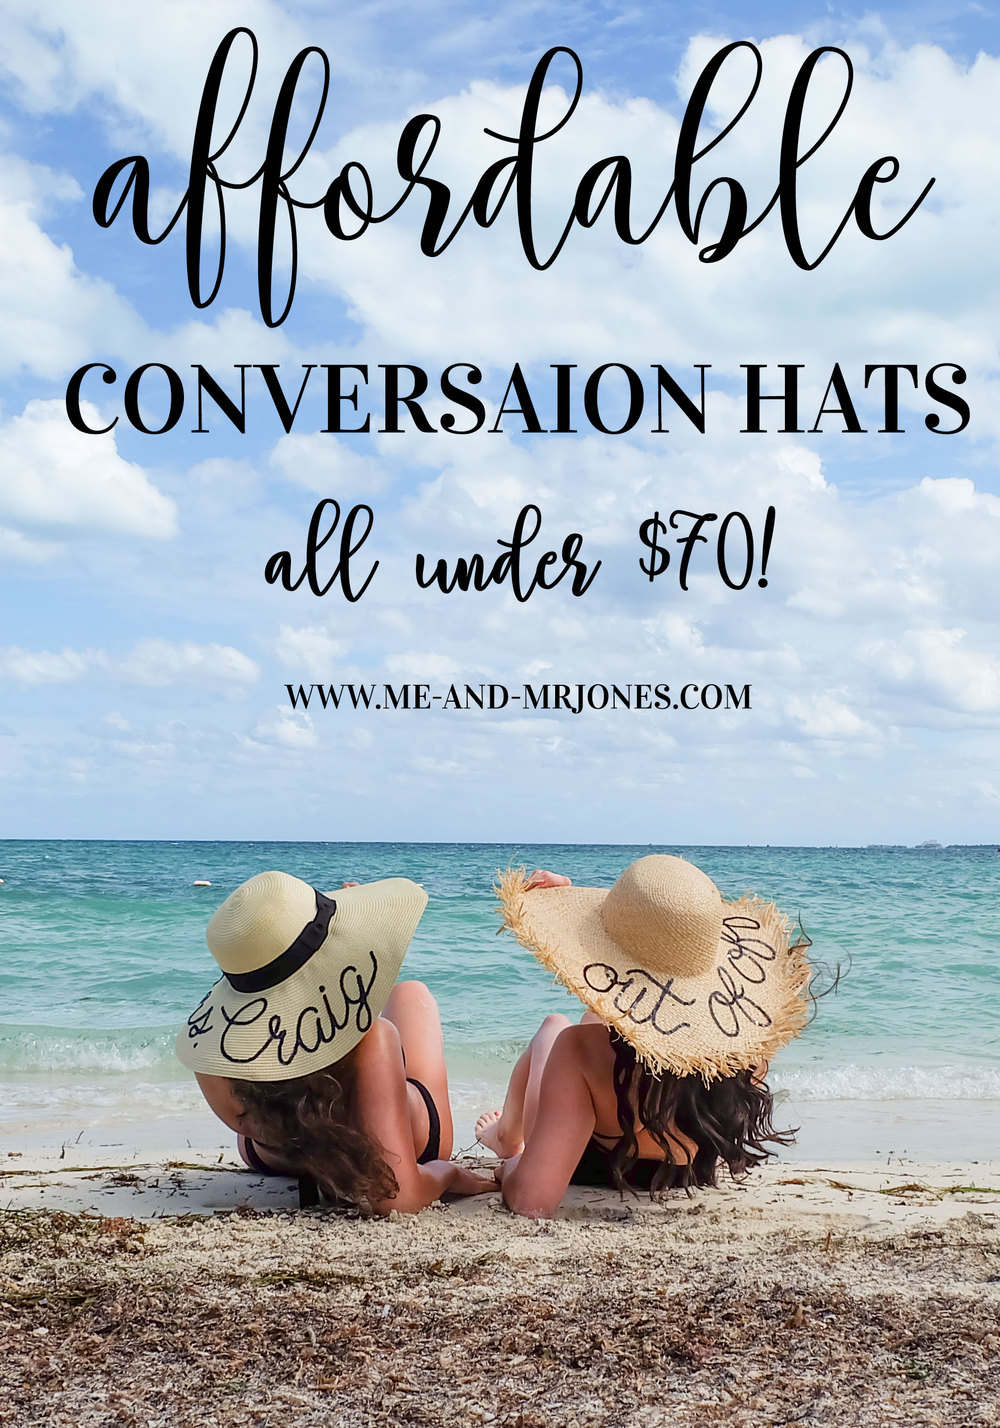 "DIY Eugenia Kim Conversation Hats, Affordable Versions of Eugenia Kim's ""Wish You Were Here"" Hats all under $70!"